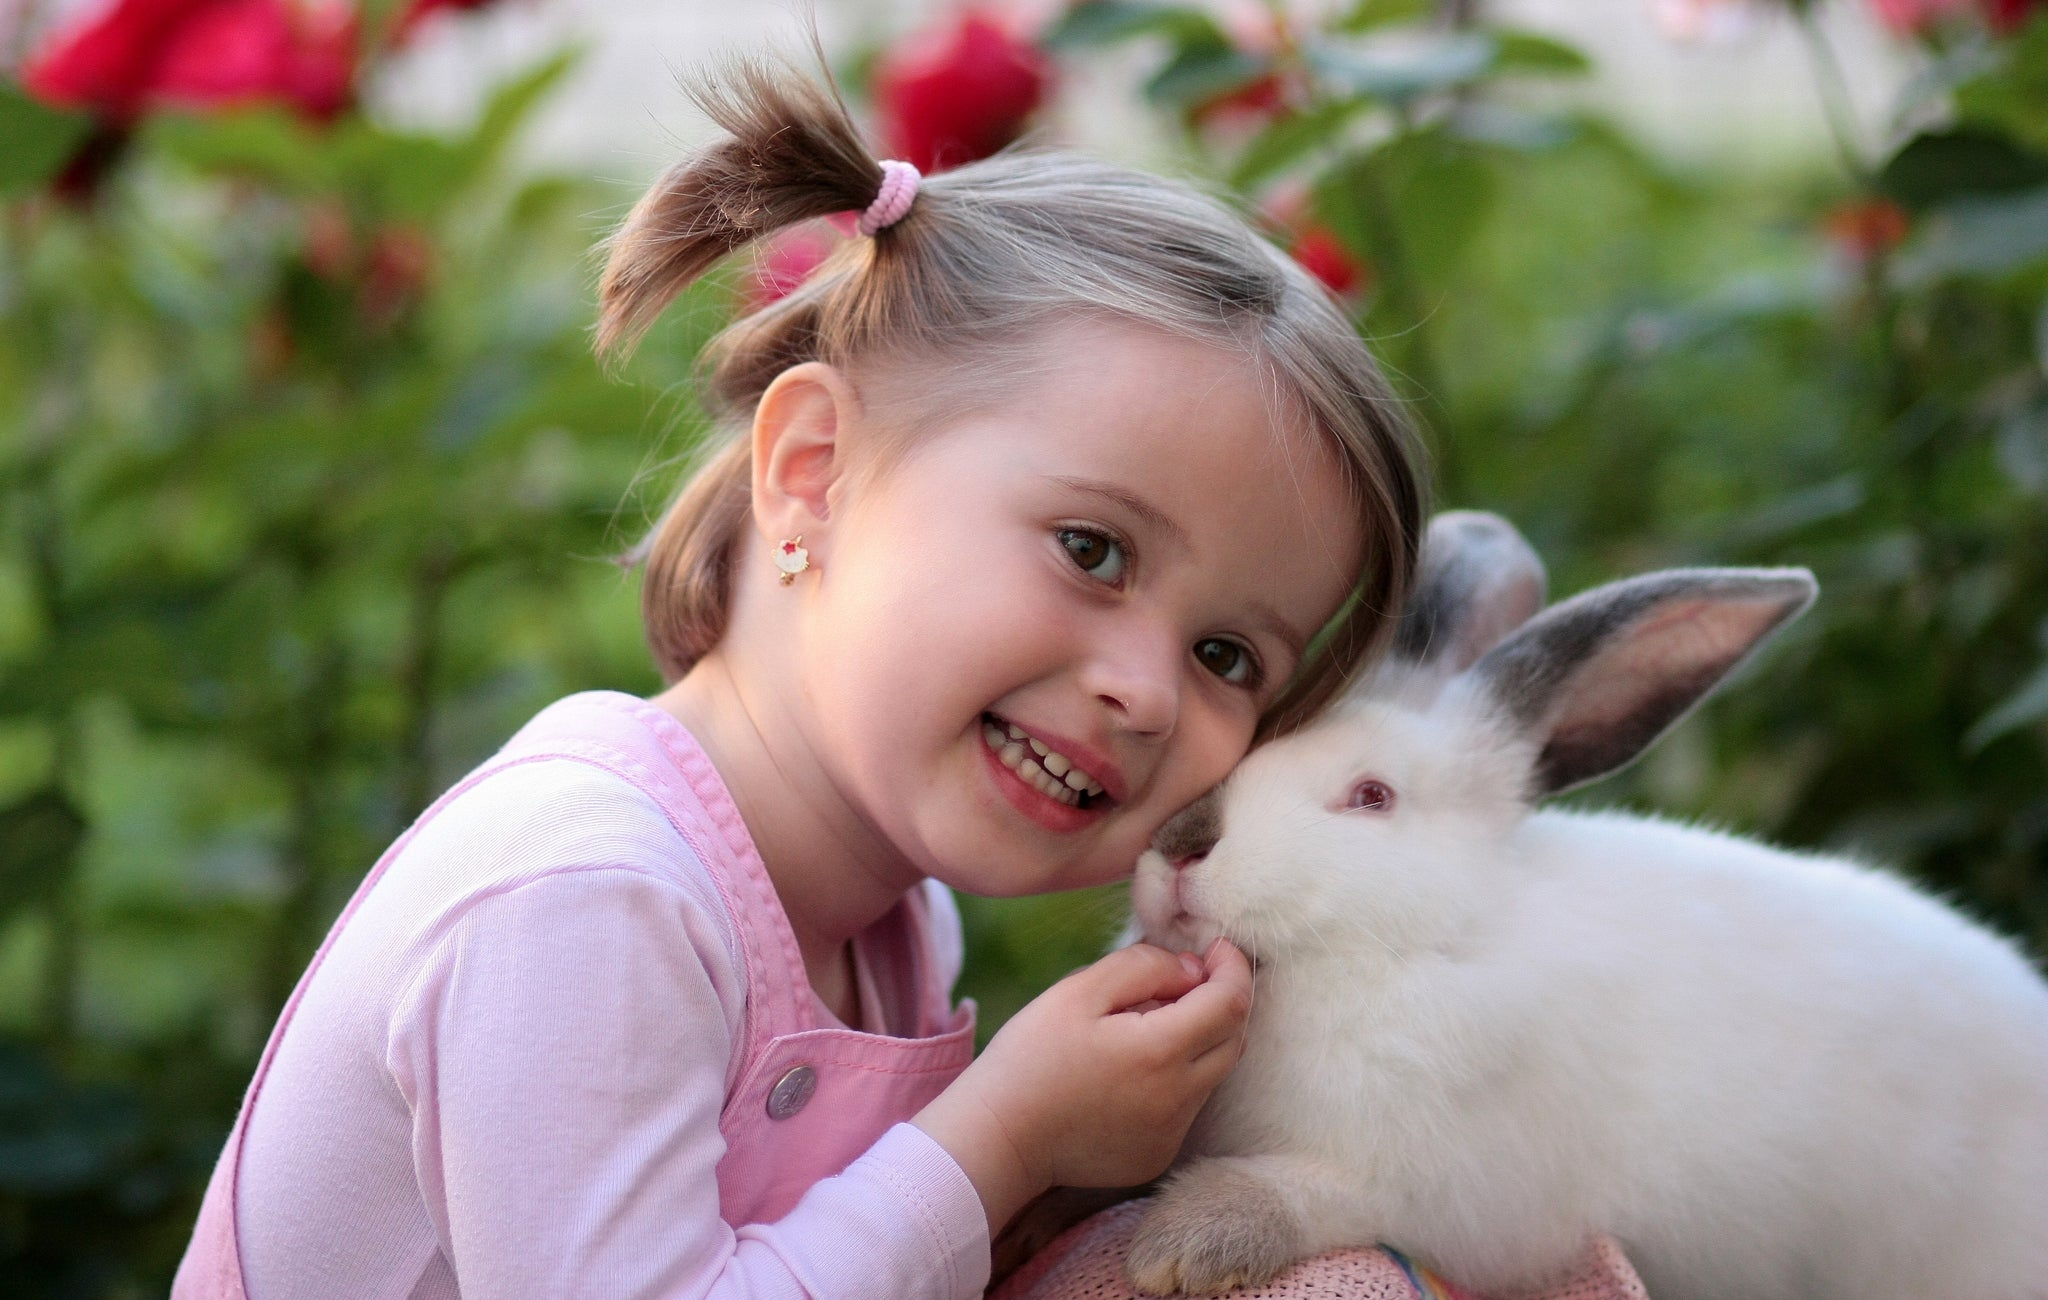 Little girl holding a white bunny rabbit, for AutoBrush